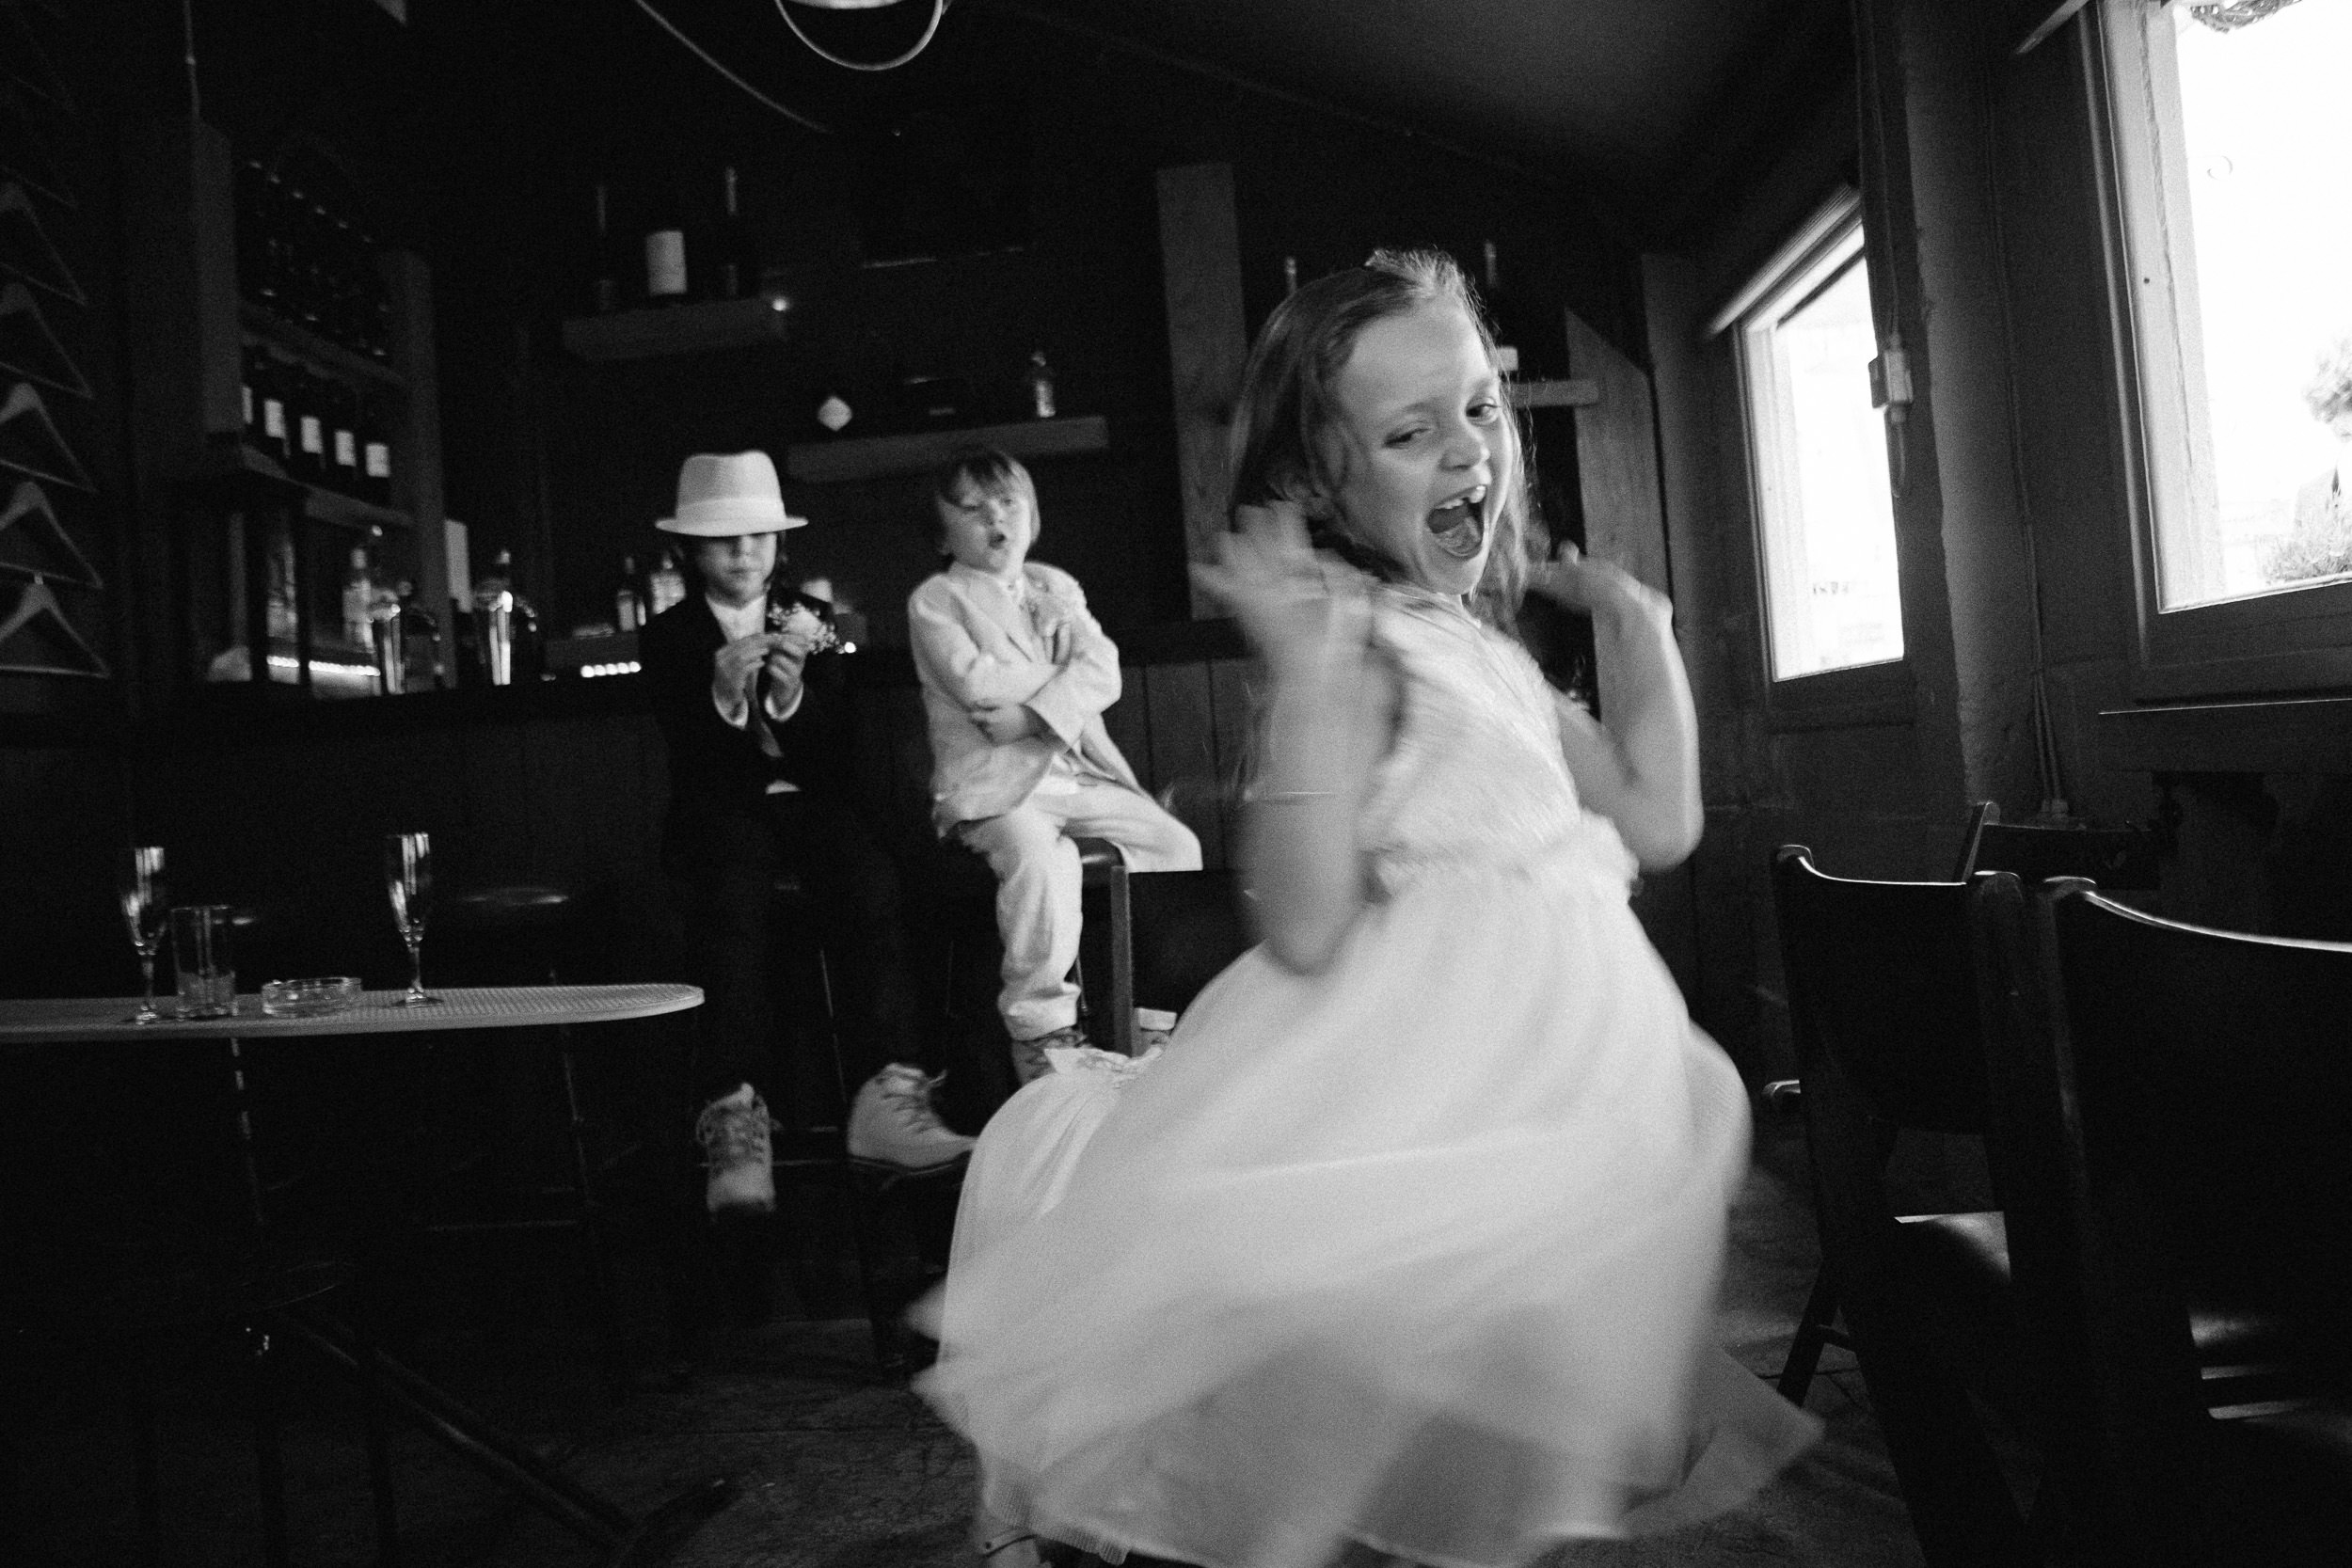 clairebyrnephotography-fun-wedding-photographer-ireland-creative-282.jpg